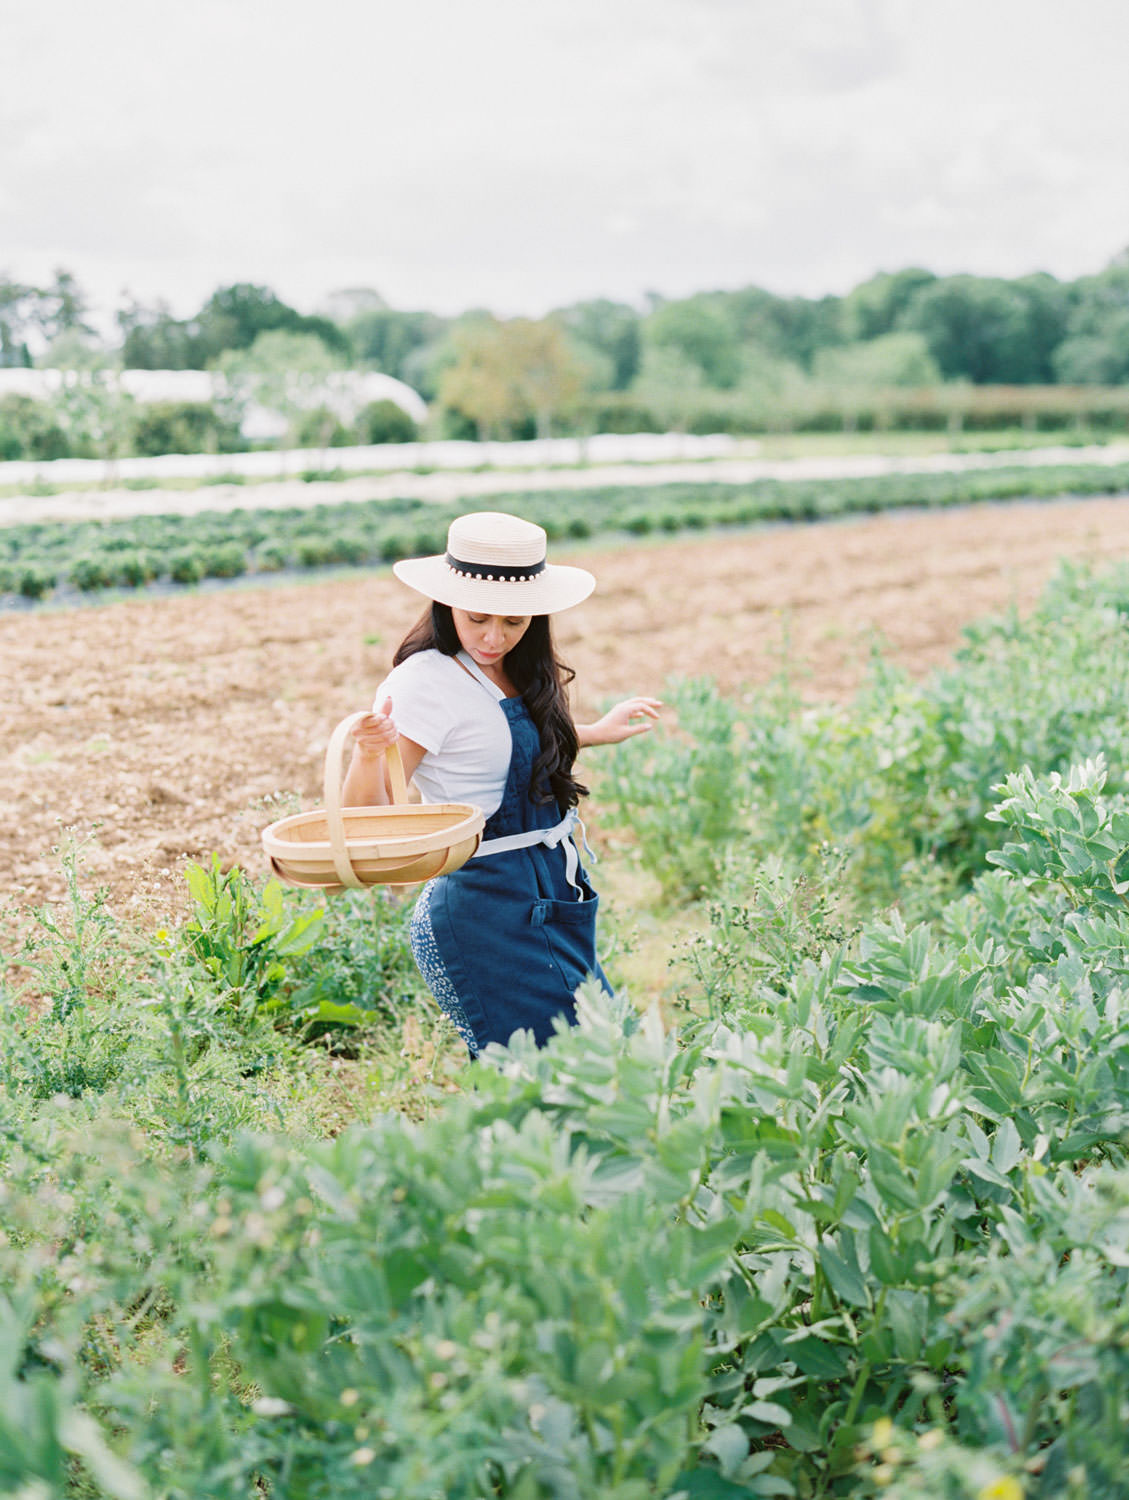 Daylesford Farm woman foraging in the gardens. Flutter Magazine Retreat in the Cotswolds, England. Photo by Cavin Elizabeth Photography on film